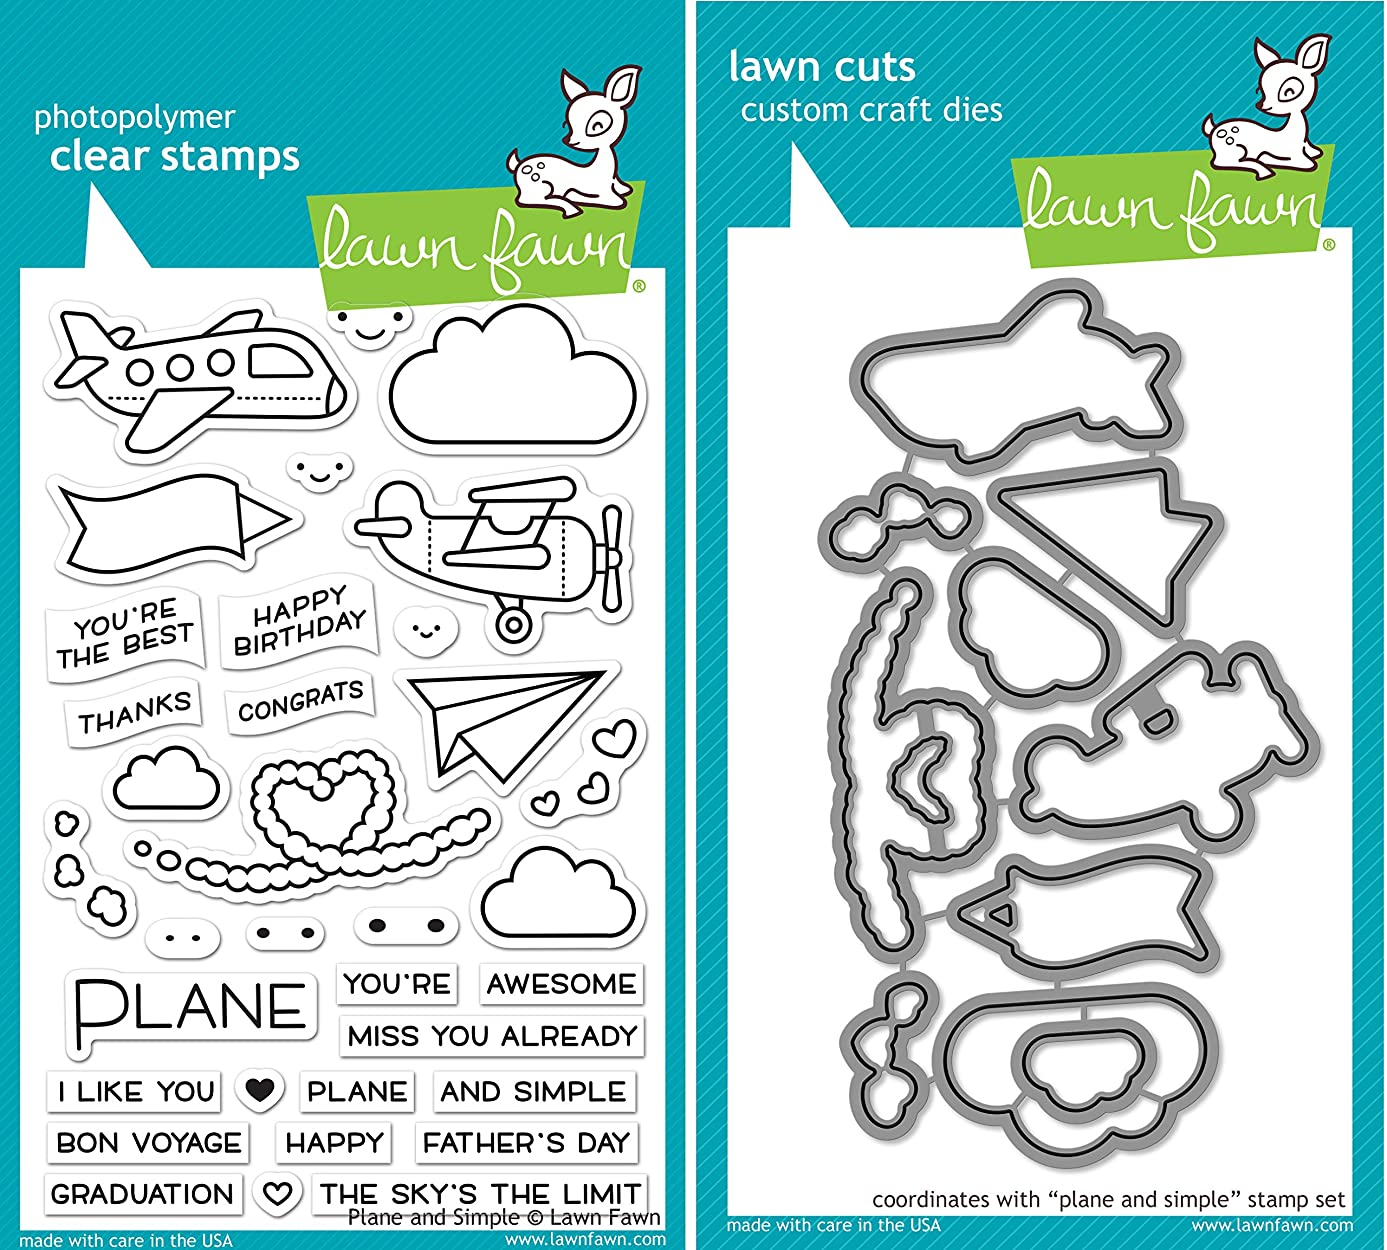 Lawn Fawn Plane and Simple Stamp and Die Bundle (LF1409) and (LF1410) jhcs2635141